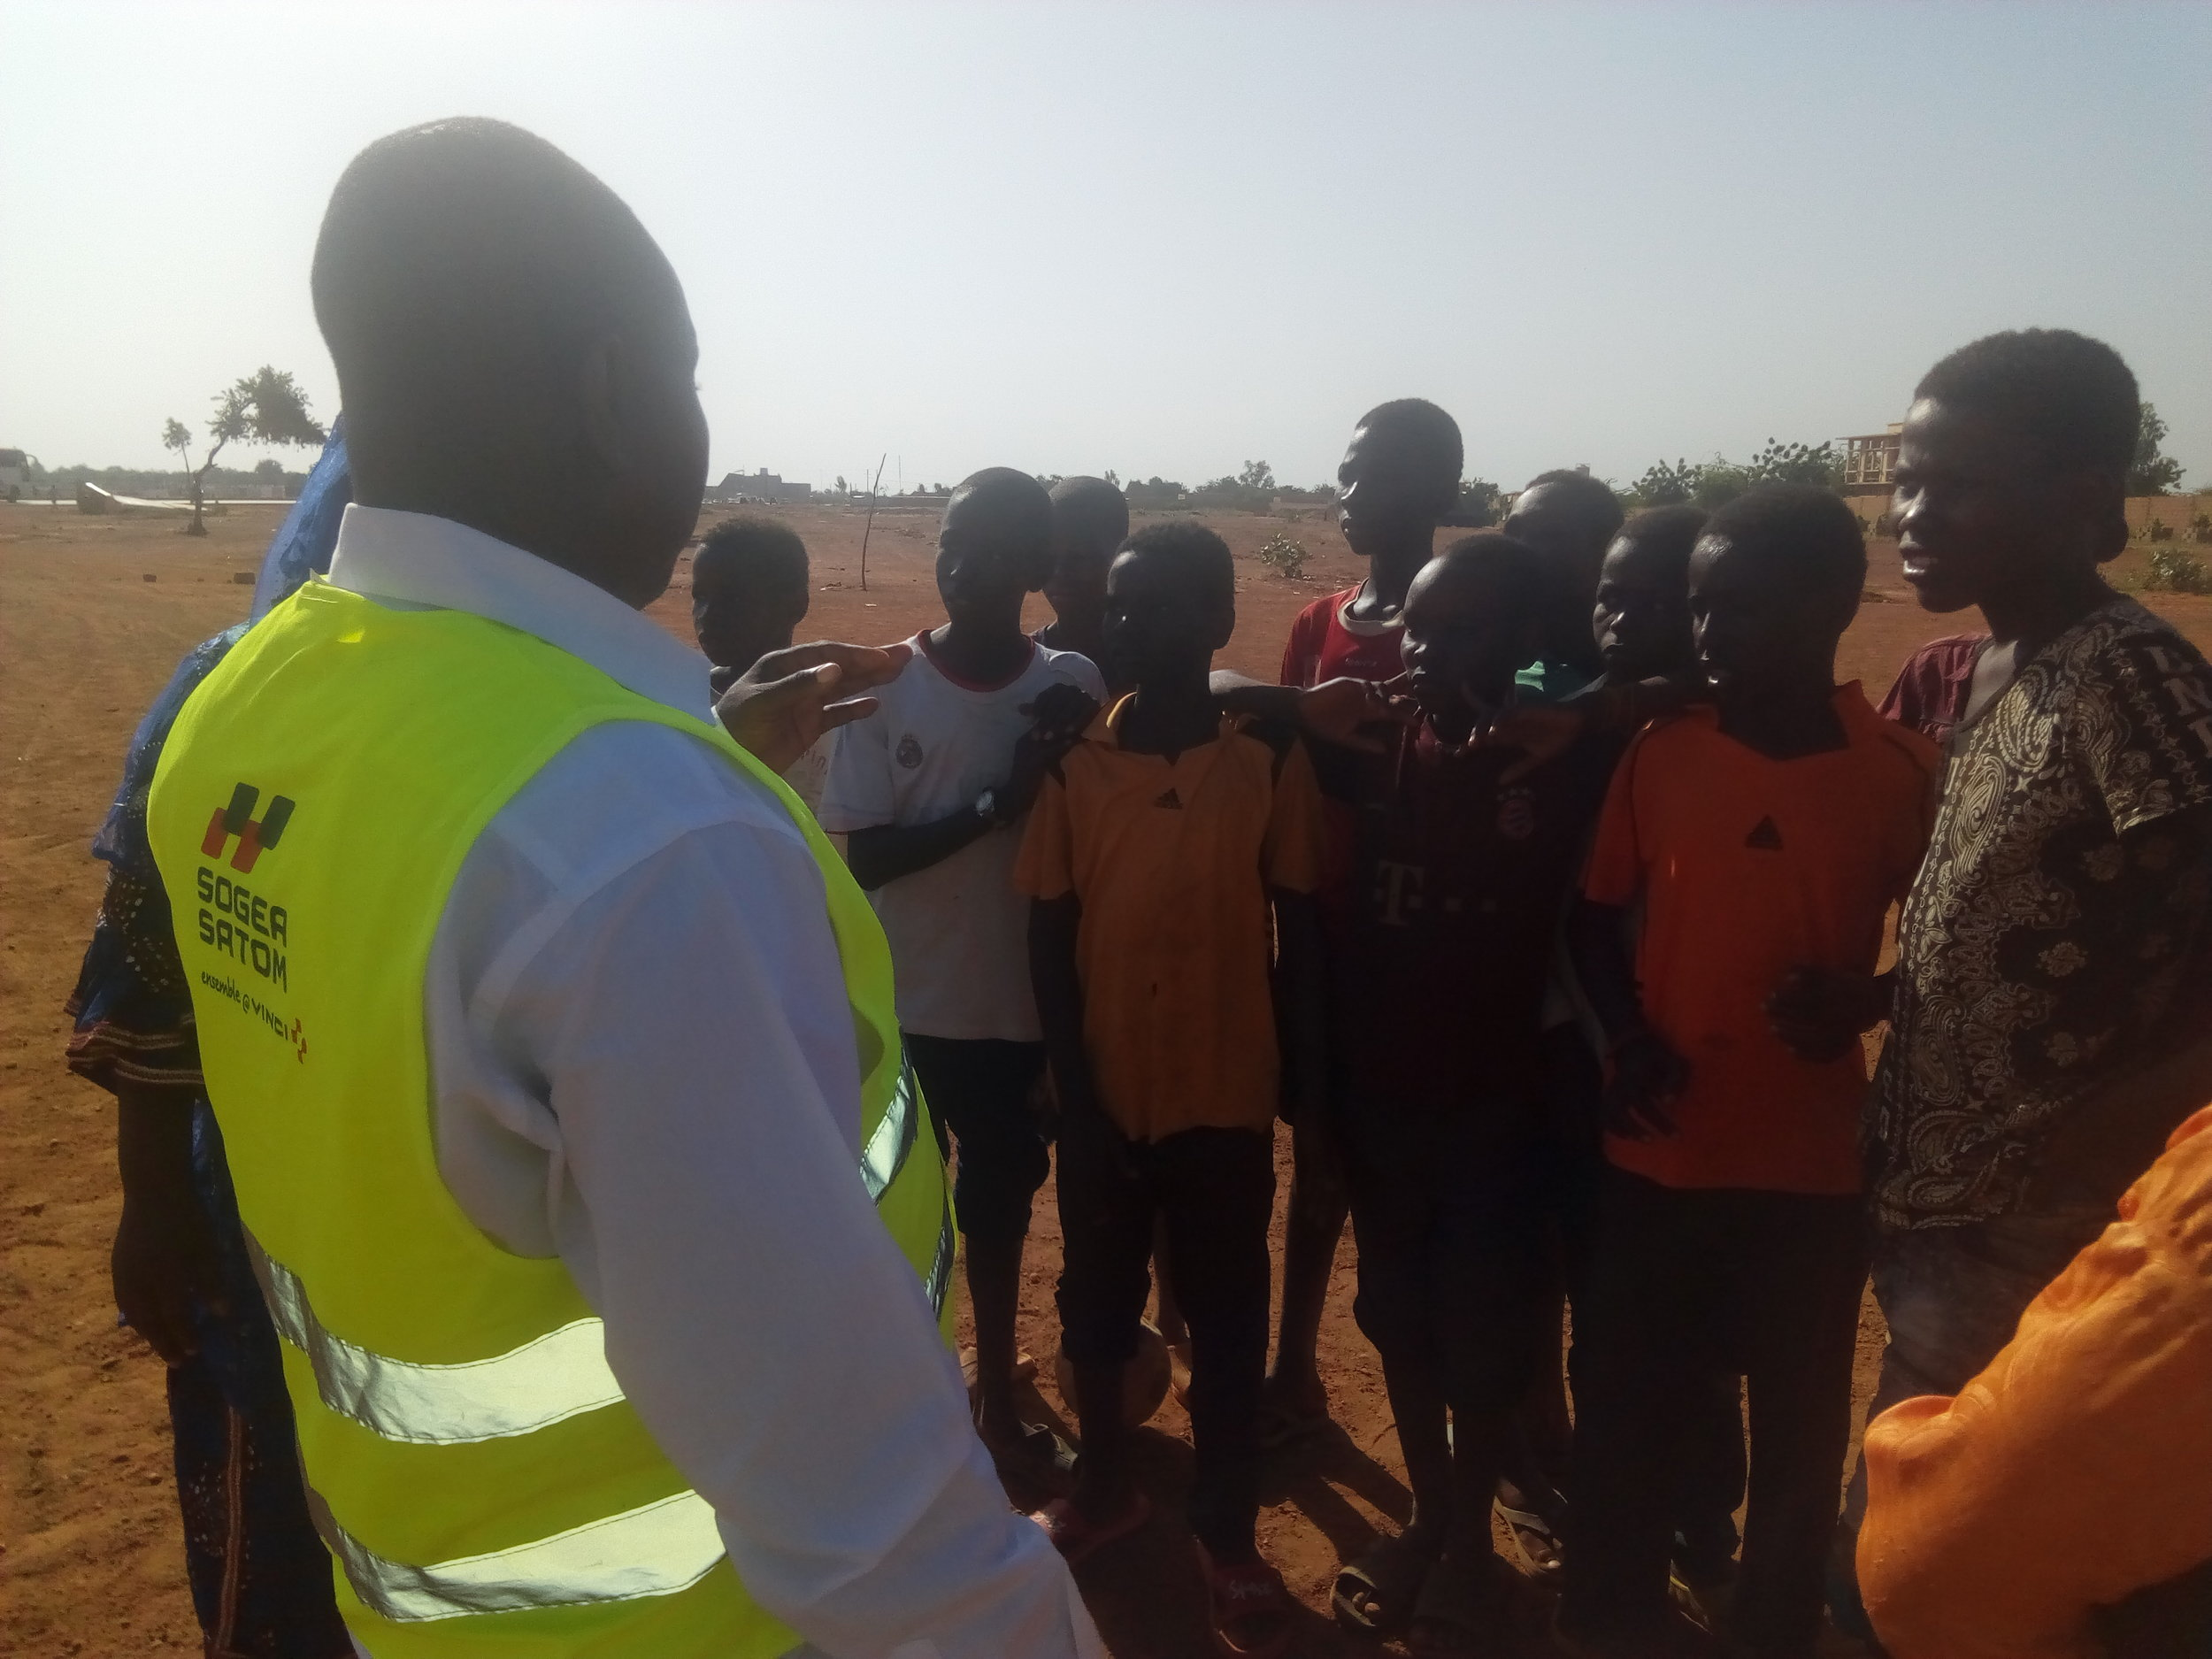 Organizers and local residents discuss opportunities during a site walk-through. Credit: UN-Habitat